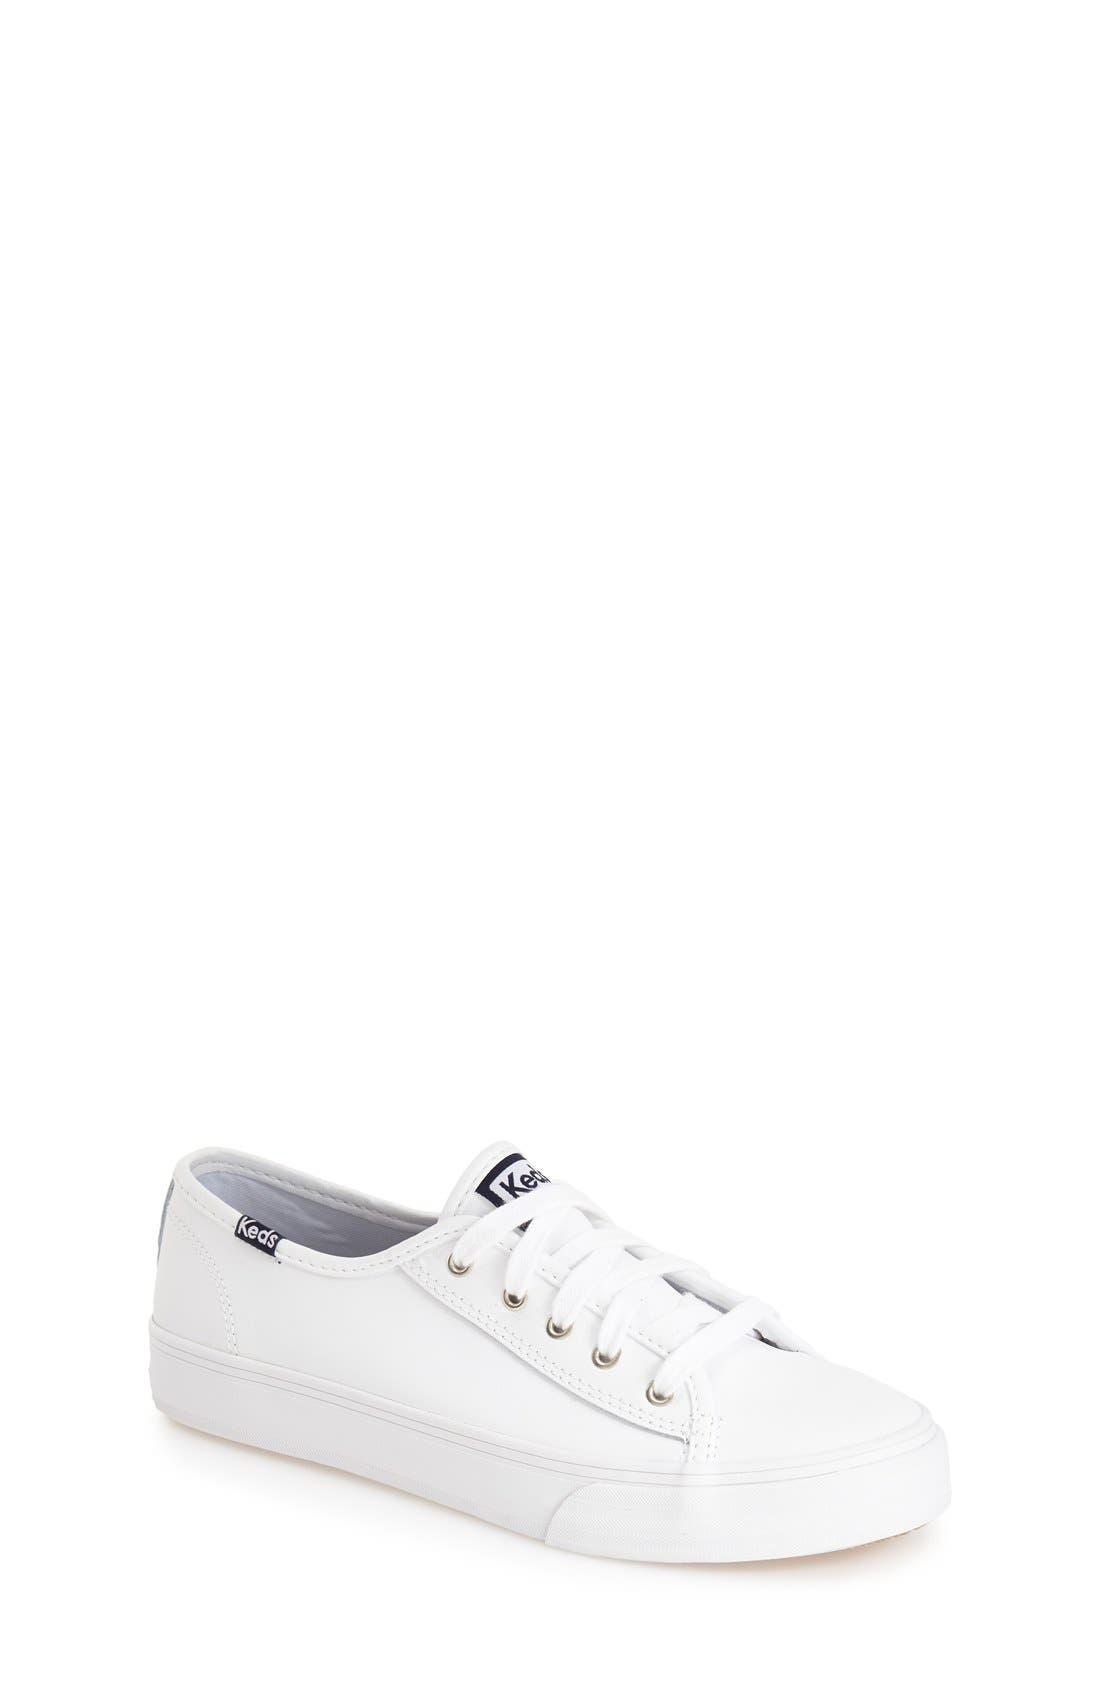 'Double Up' Sneaker,                         Main,                         color, 100